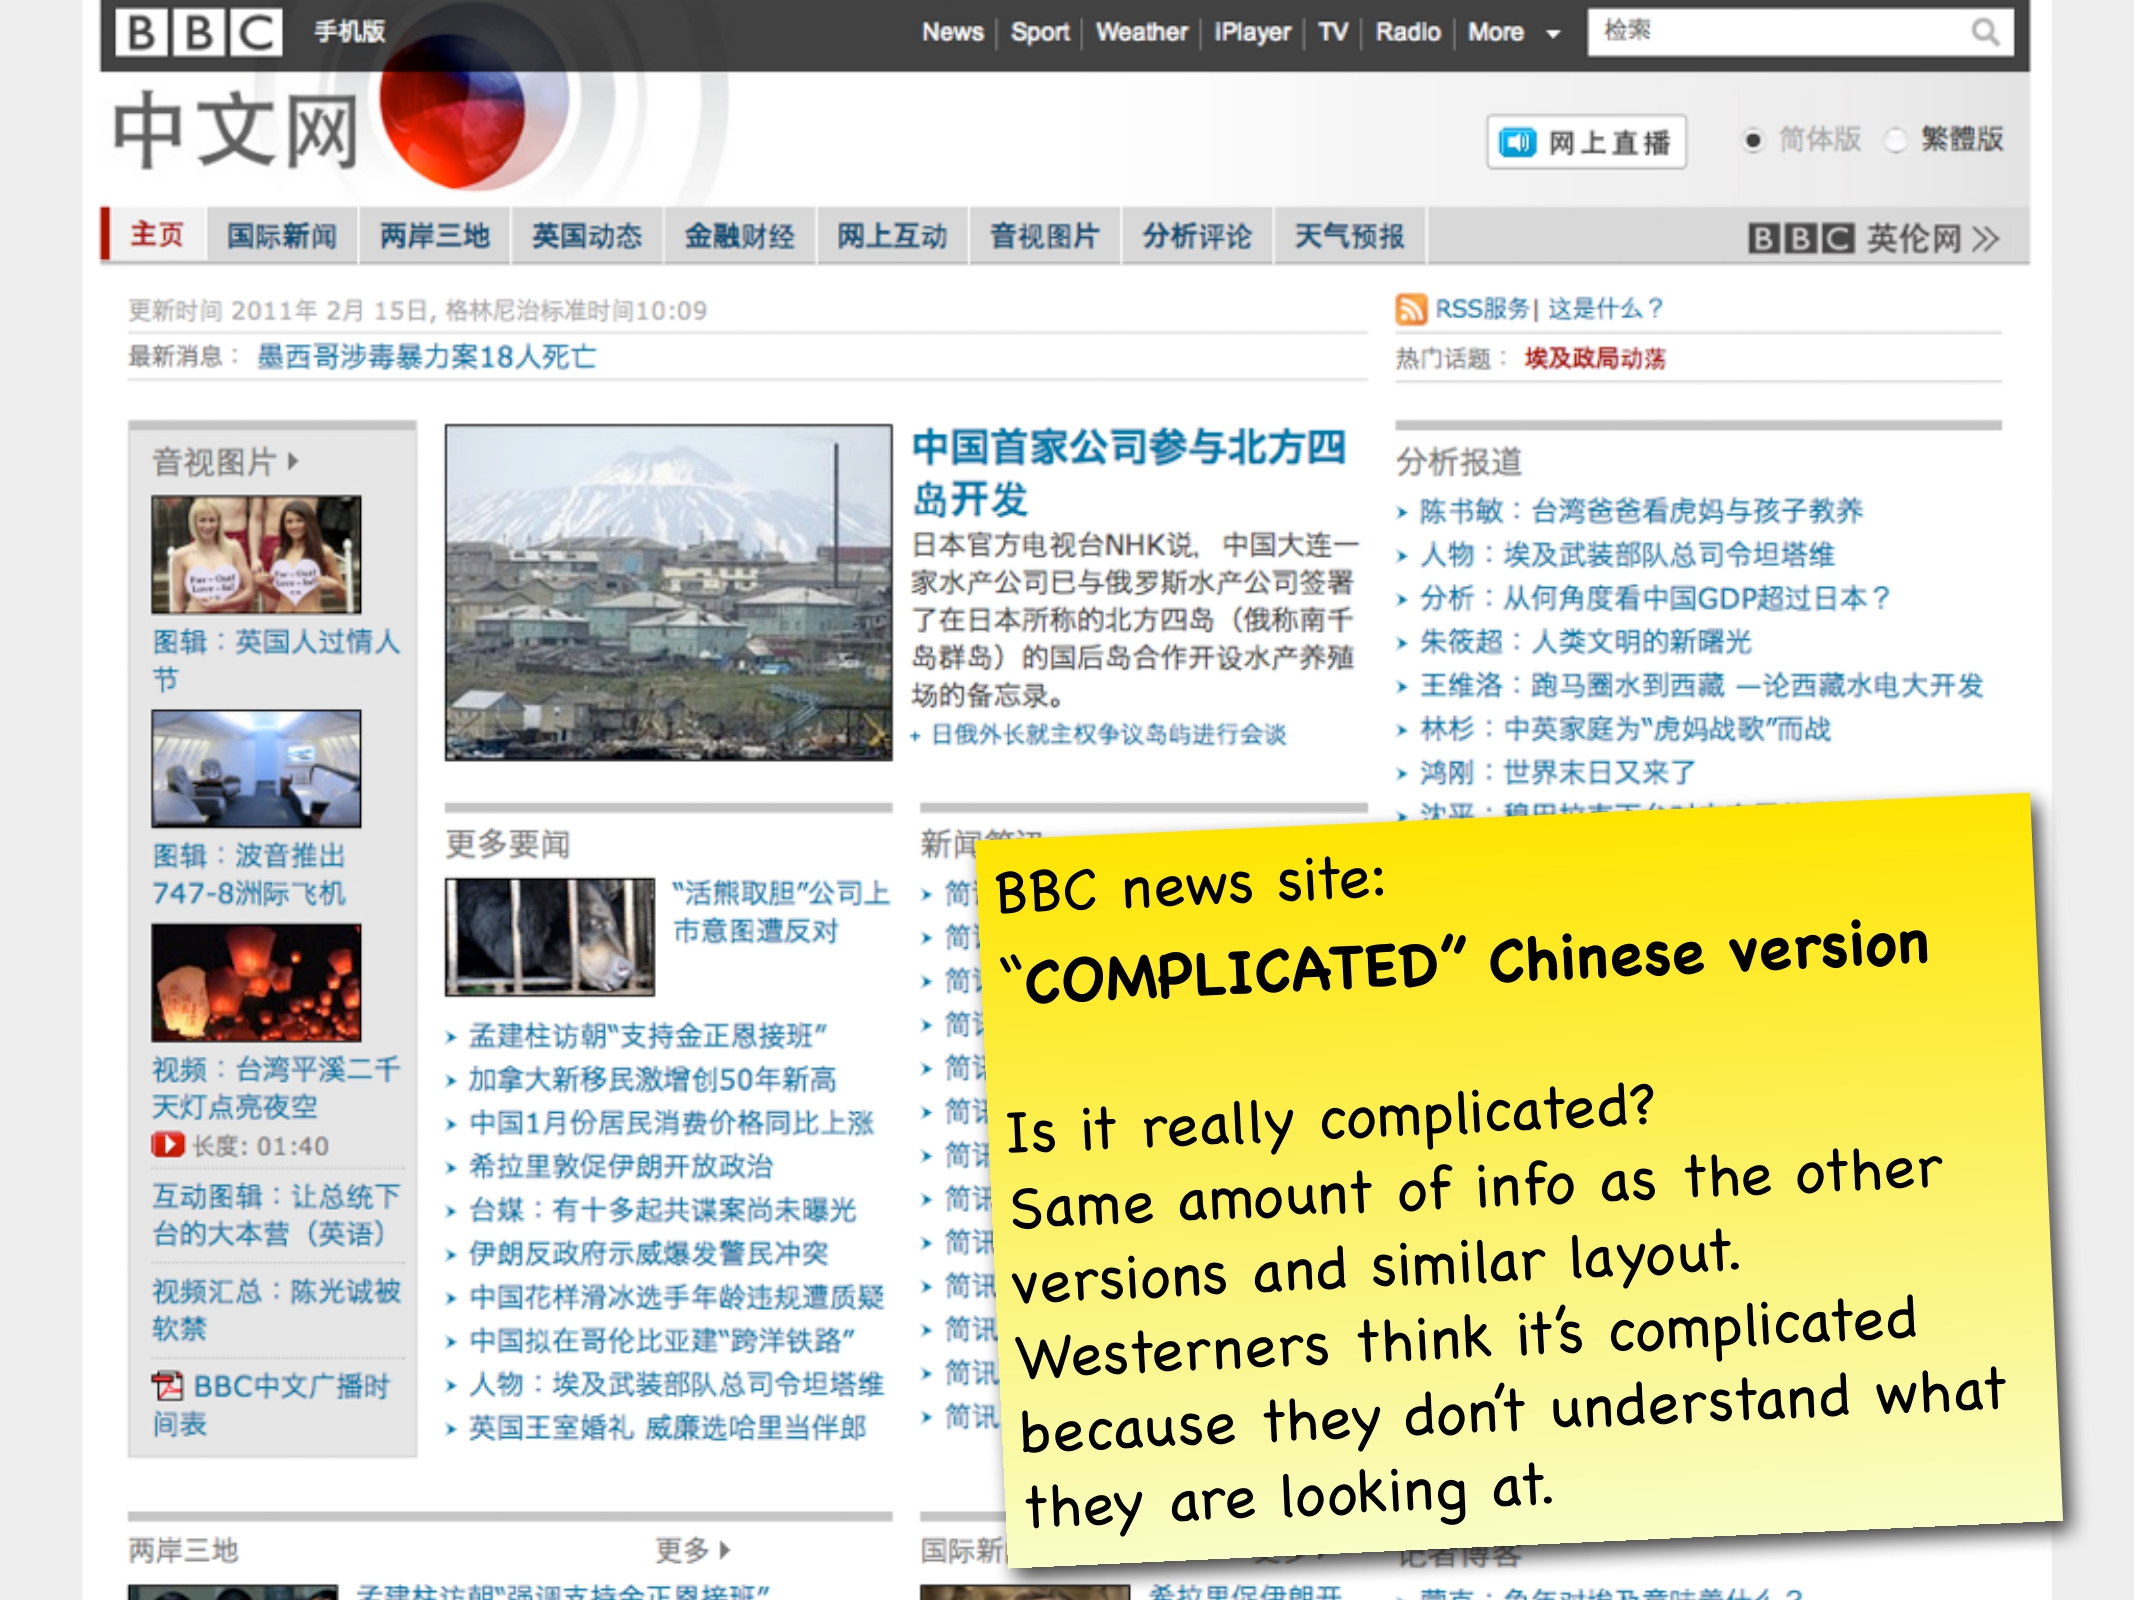 Chinese Web Design Patterns 2011_pages-to-jpg-0012.jpg